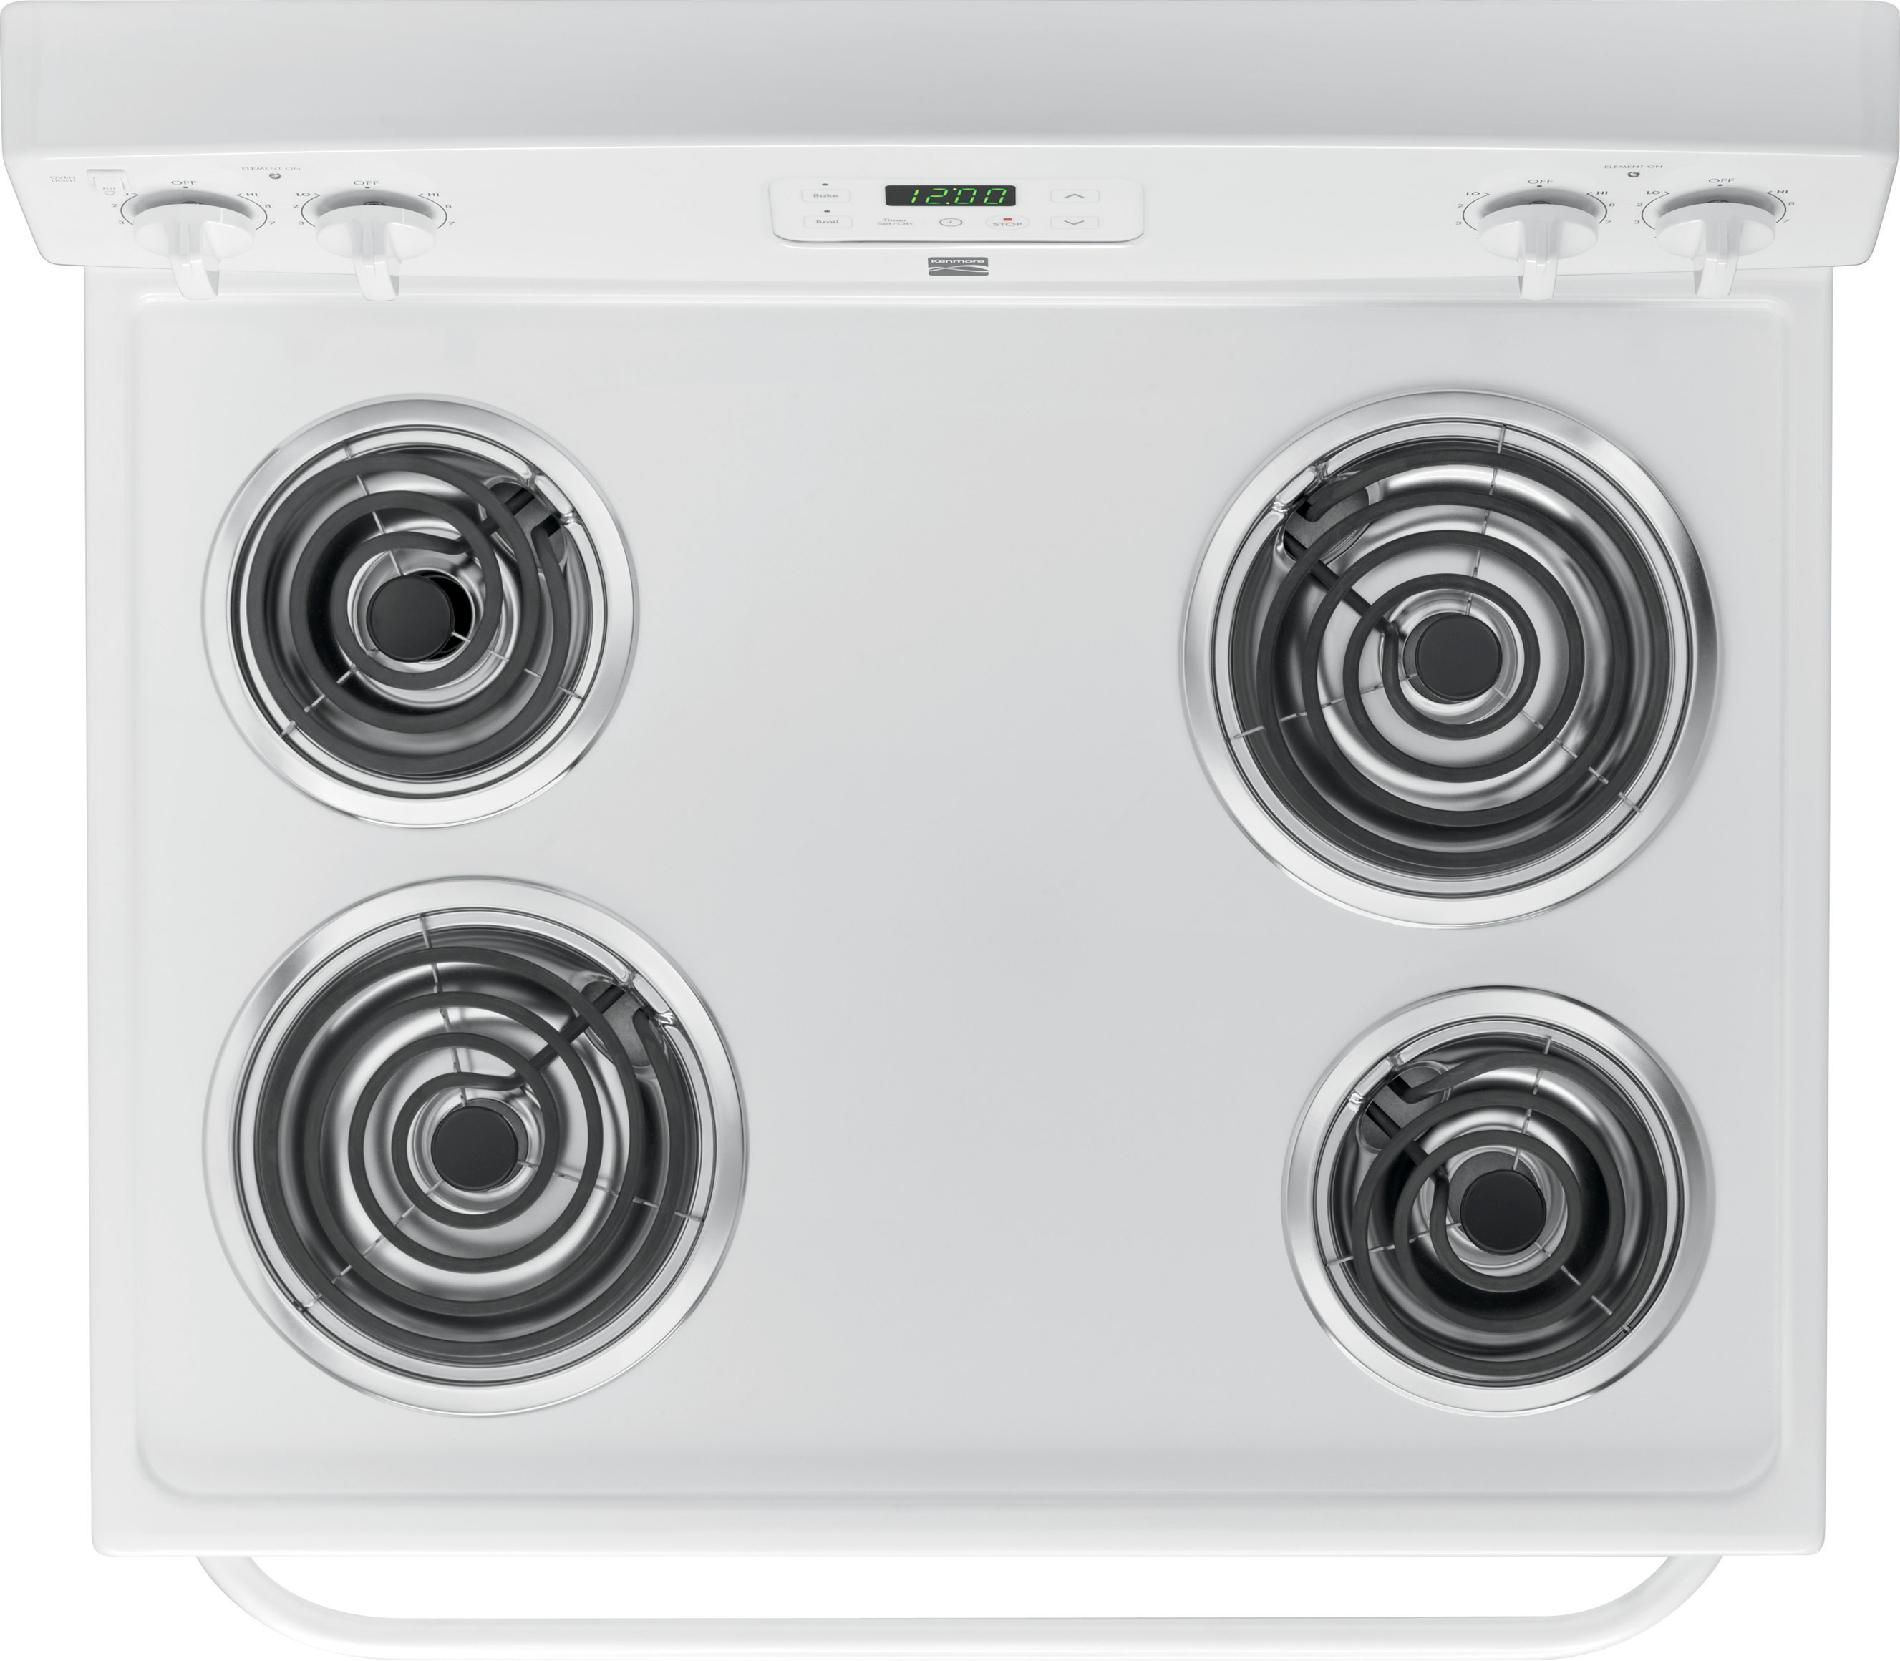 Kenmore 4.9 cu. ft. Electric Range - White